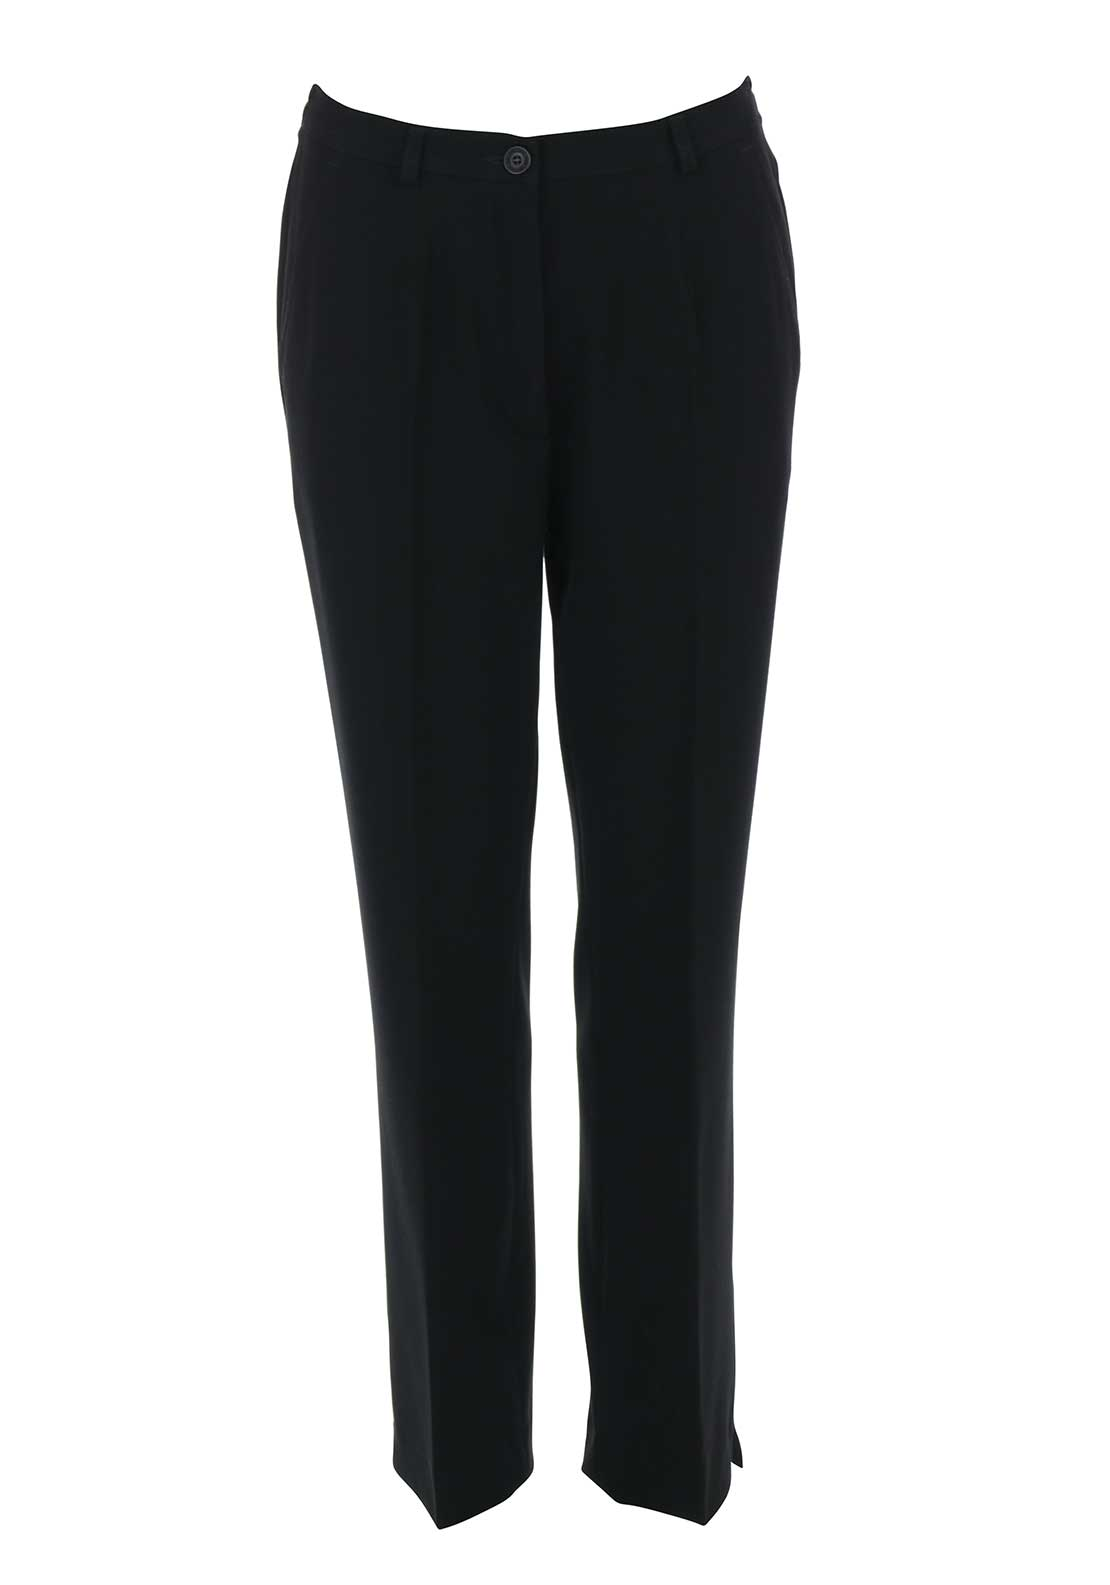 Robell Pia Comfort Fit Straight Leg Trousers, Black